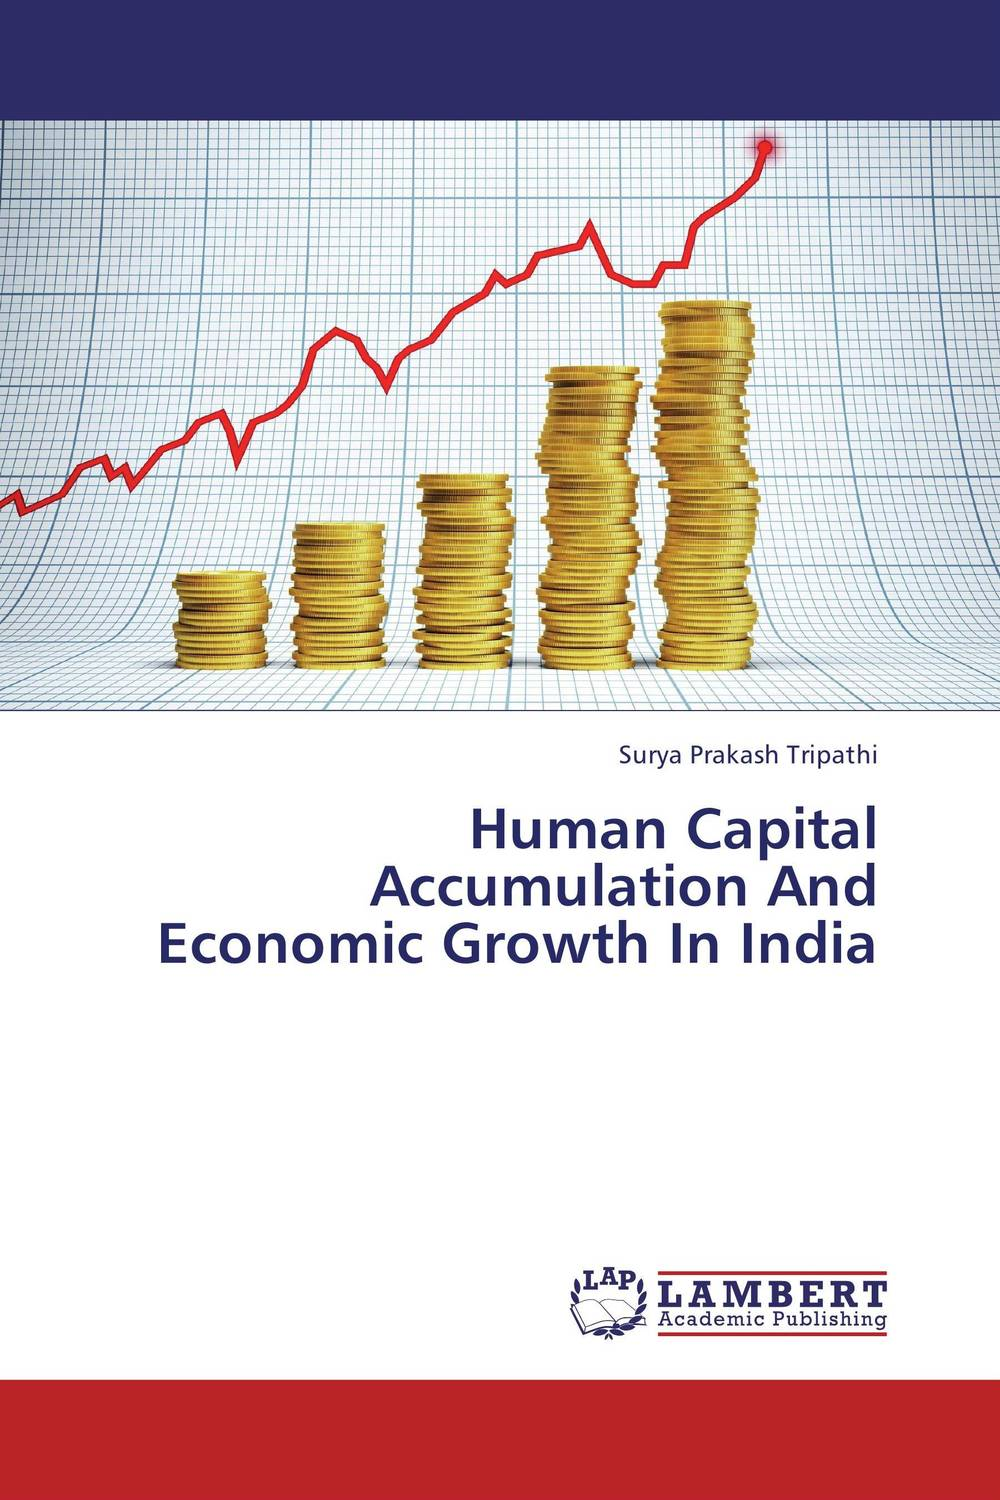 Human Capital Accumulation And Economic Growth In India khondoker abdul mottaleb human capital and industrial development